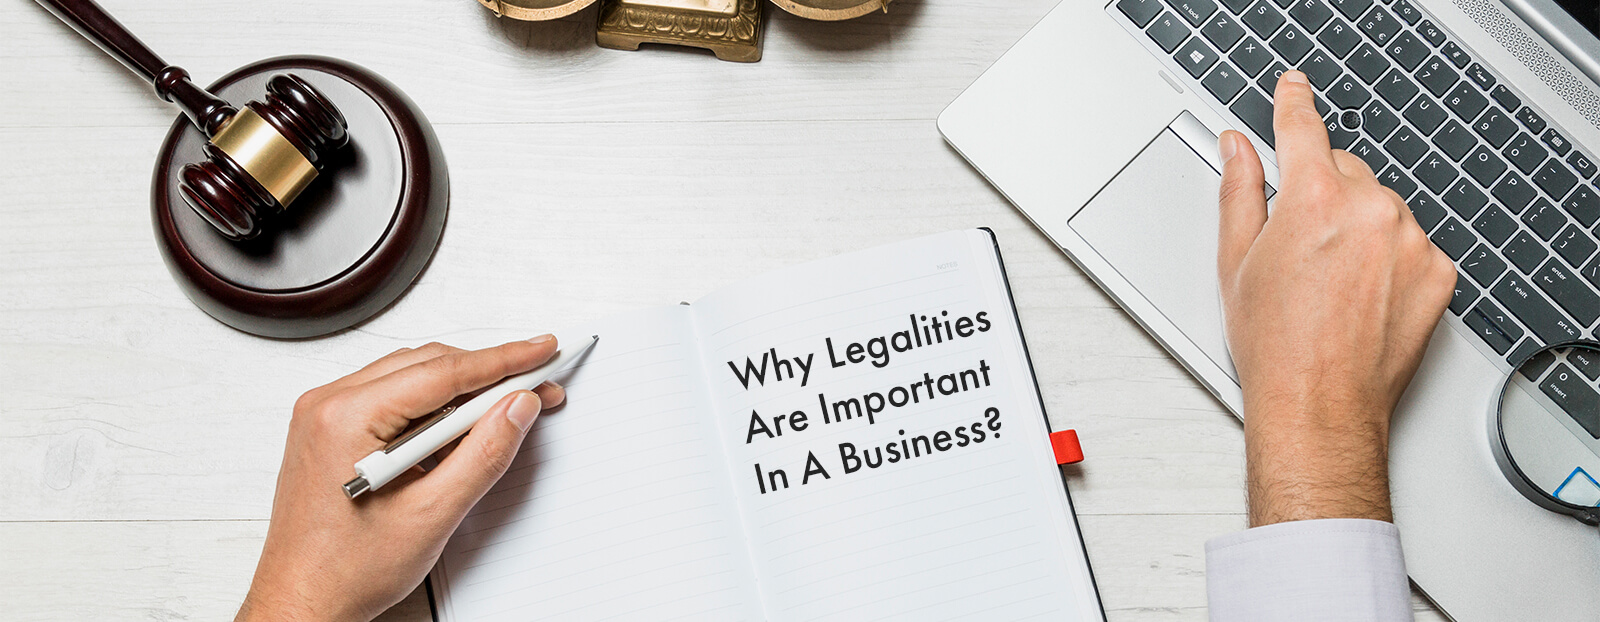 Why Legalities Are Important In A Business?